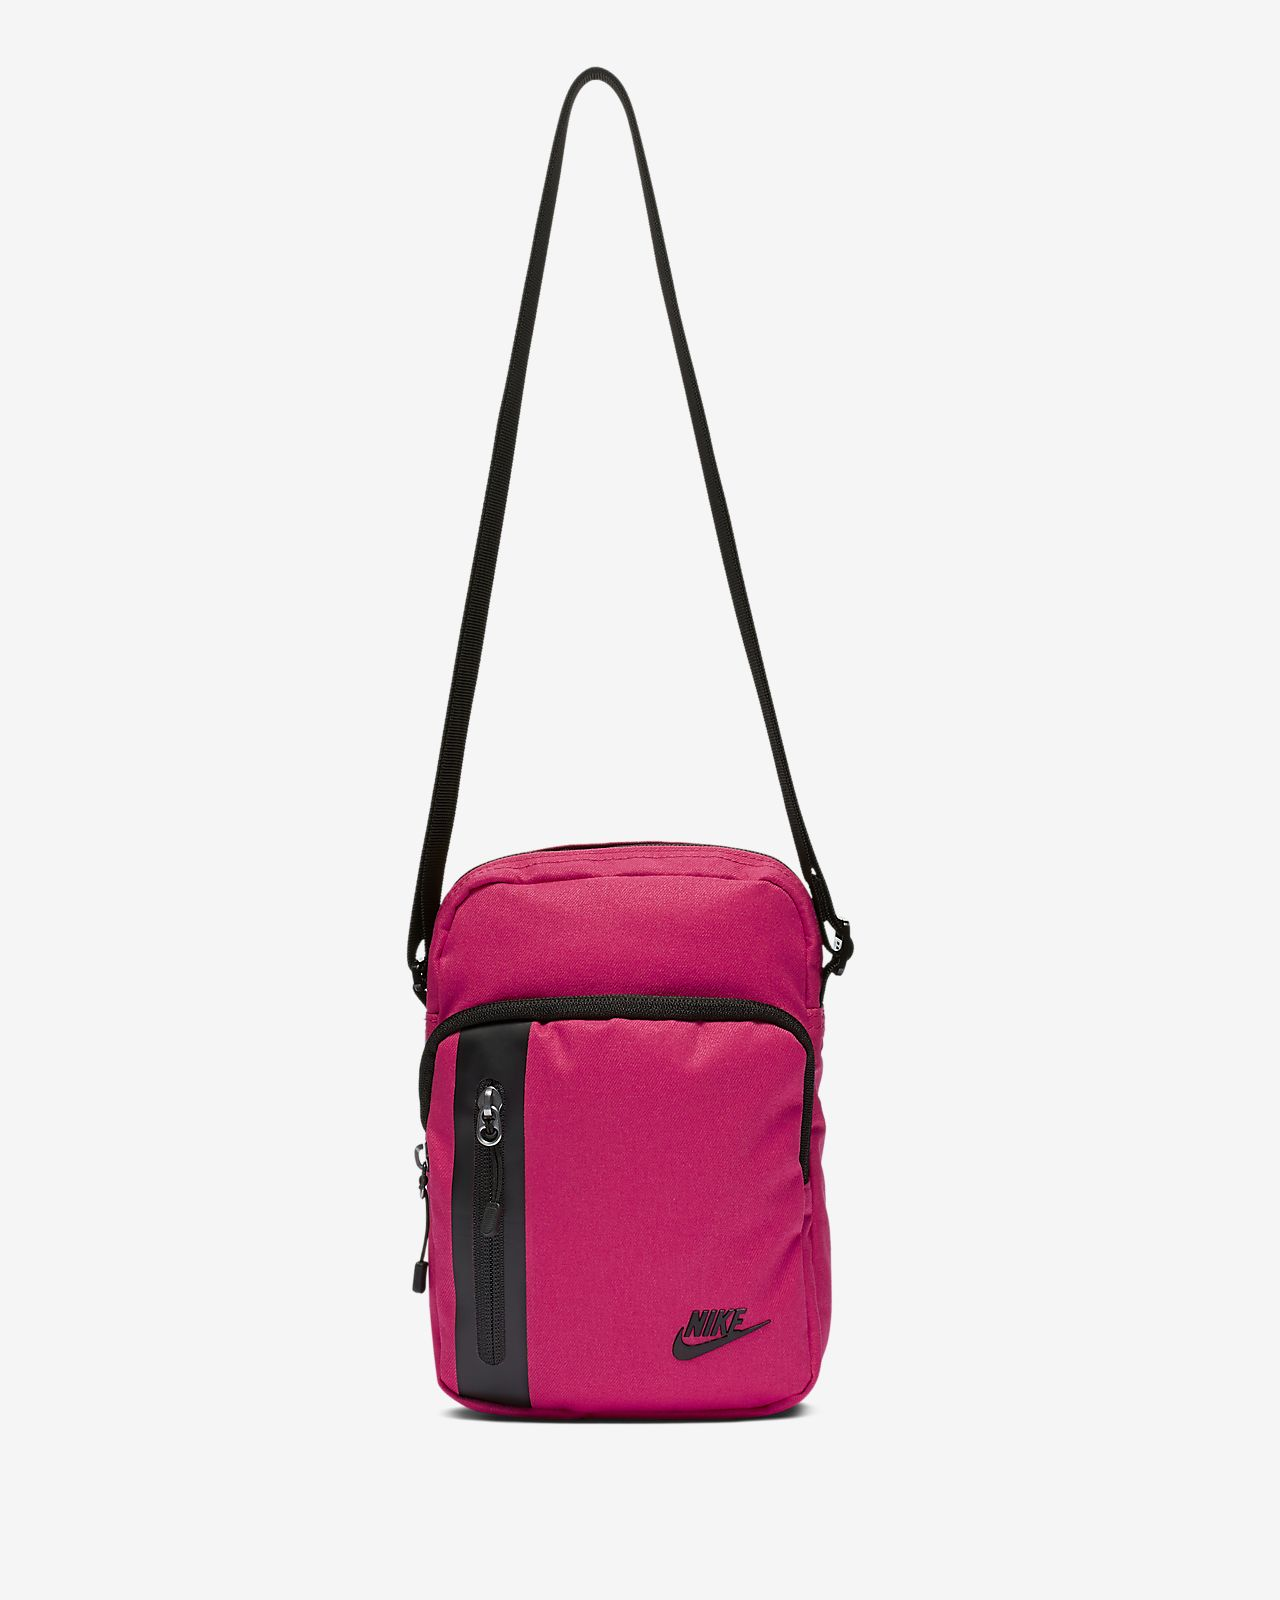 de361caa002d Nike Core Small Items 3.0 Bag. Nike.com CH